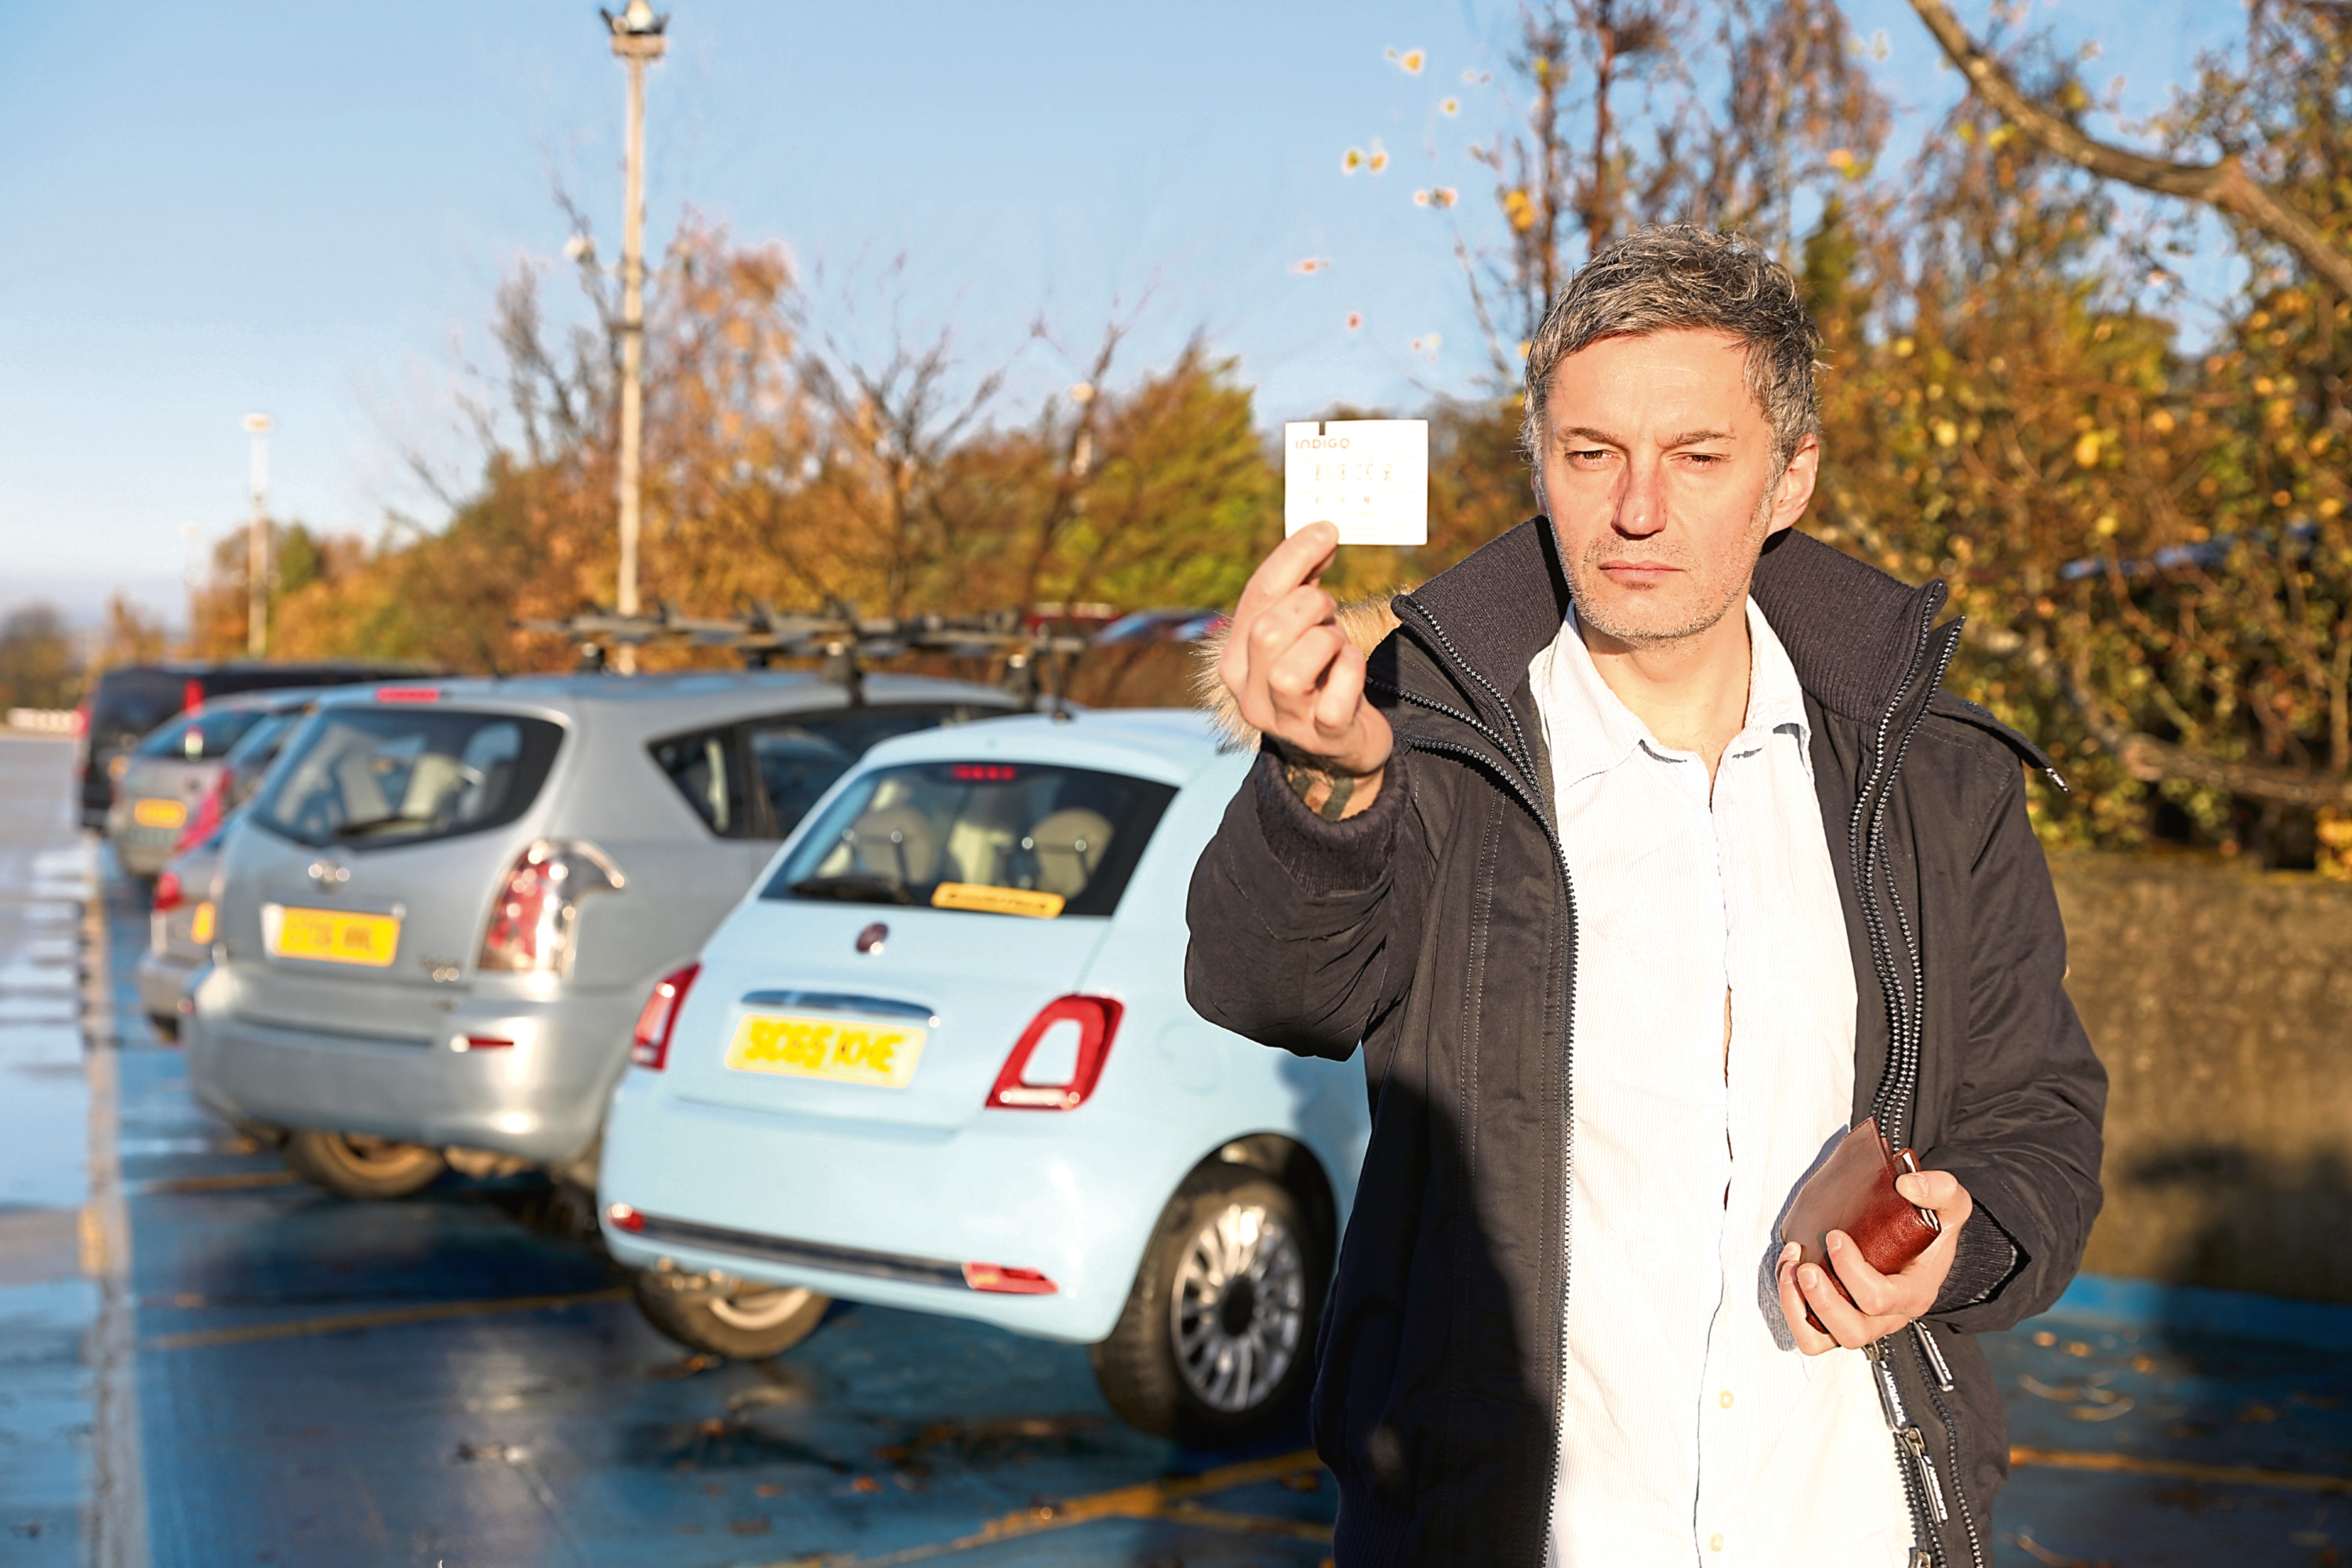 Petr Stepo, 44, from Tayport, in the car park at Ninewells Hospital.